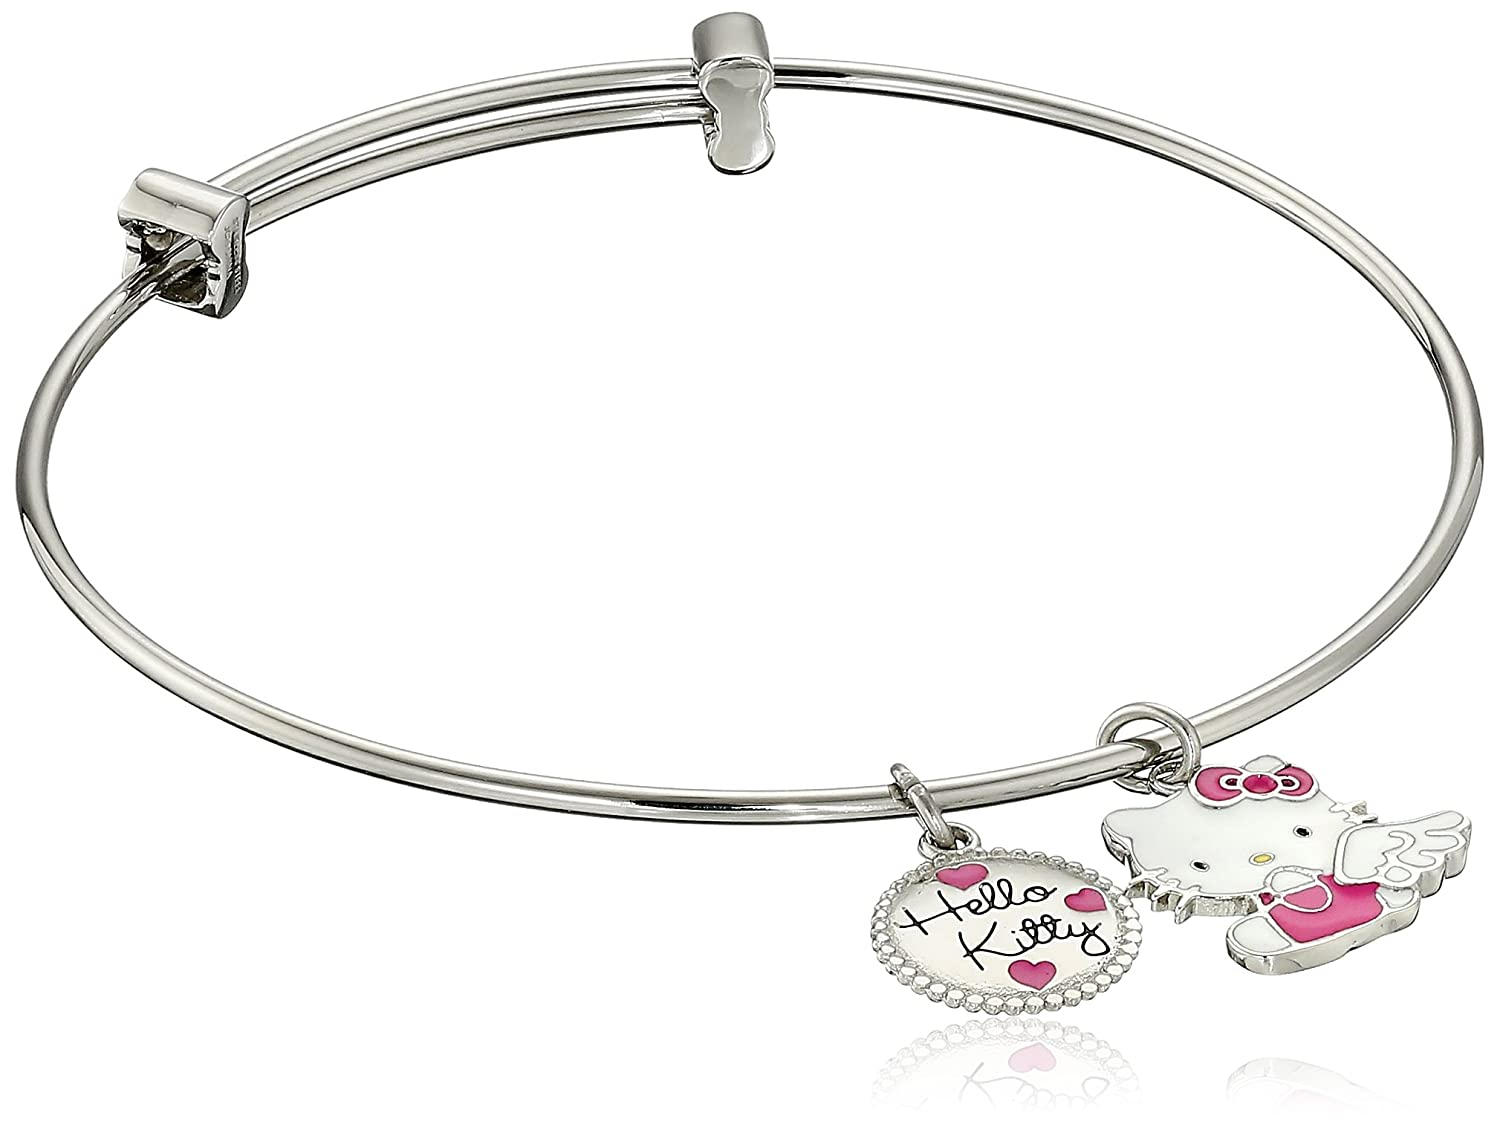 bracelets bangles and engraved stainless name bangle cheer kd charm steel jewelry eg pom cheerleader